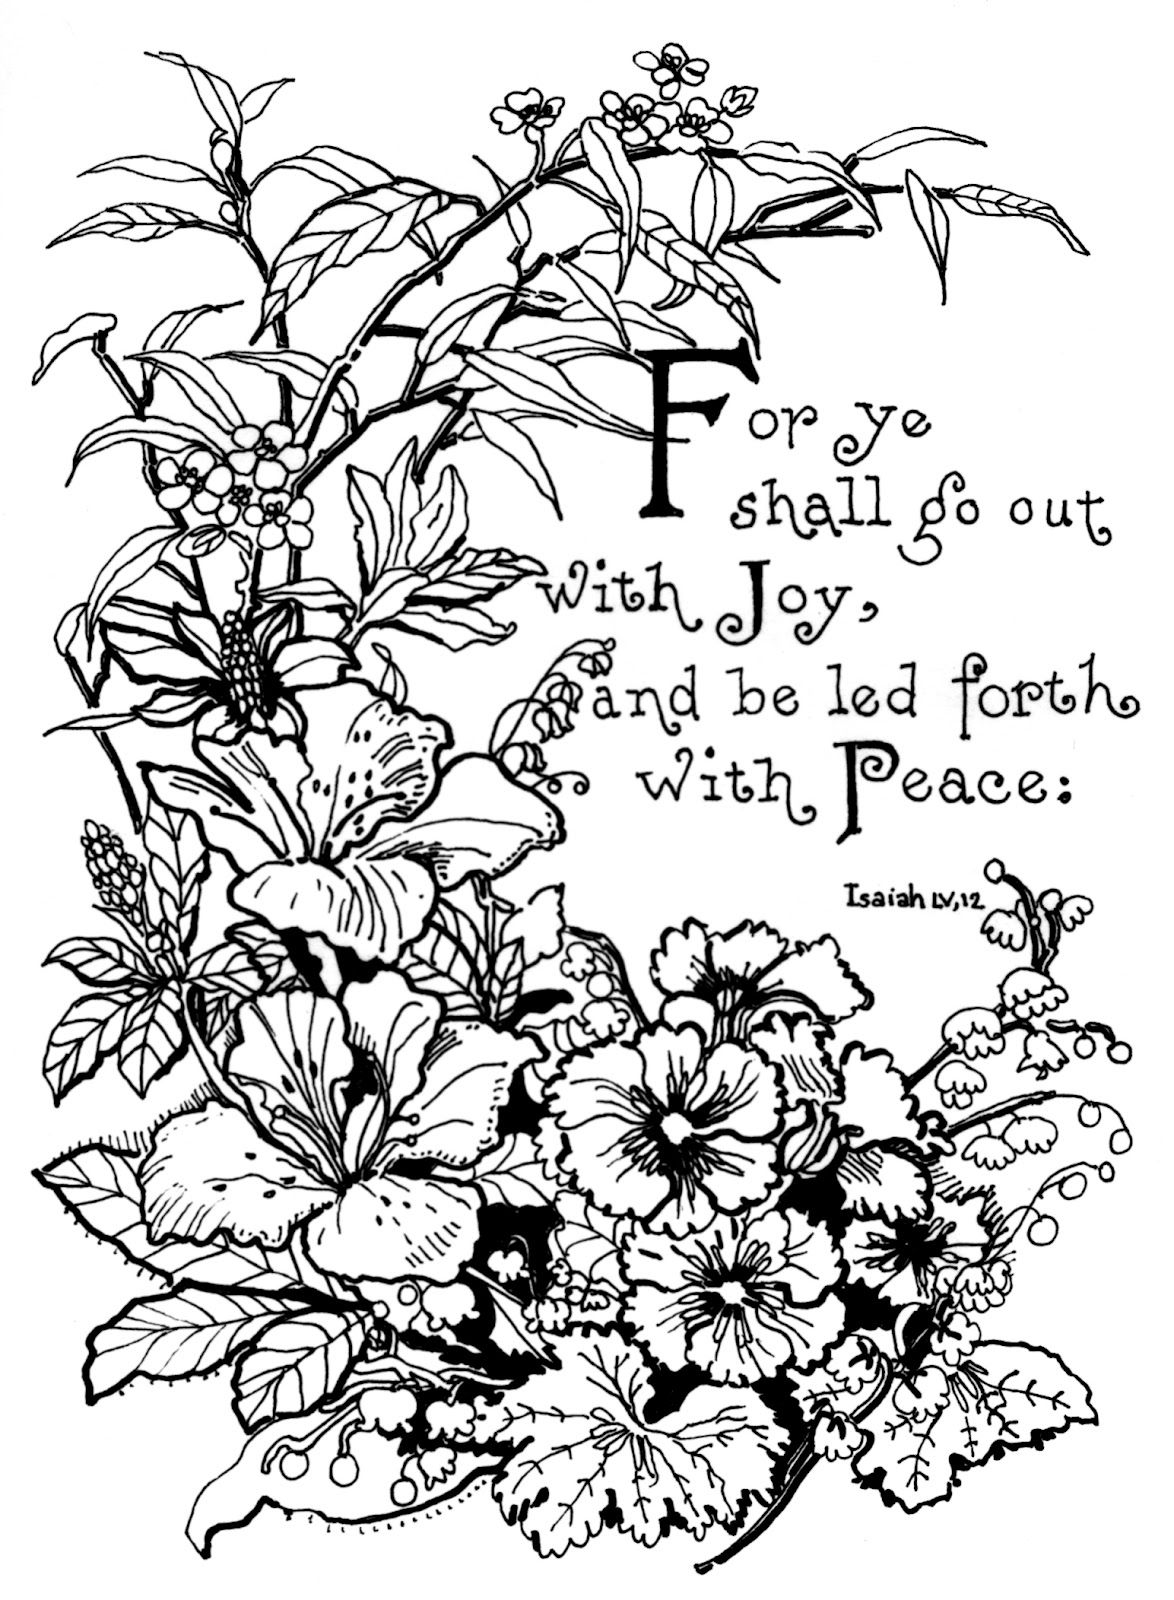 isaiah 5512 lilies and pansies fantasy coloring pages